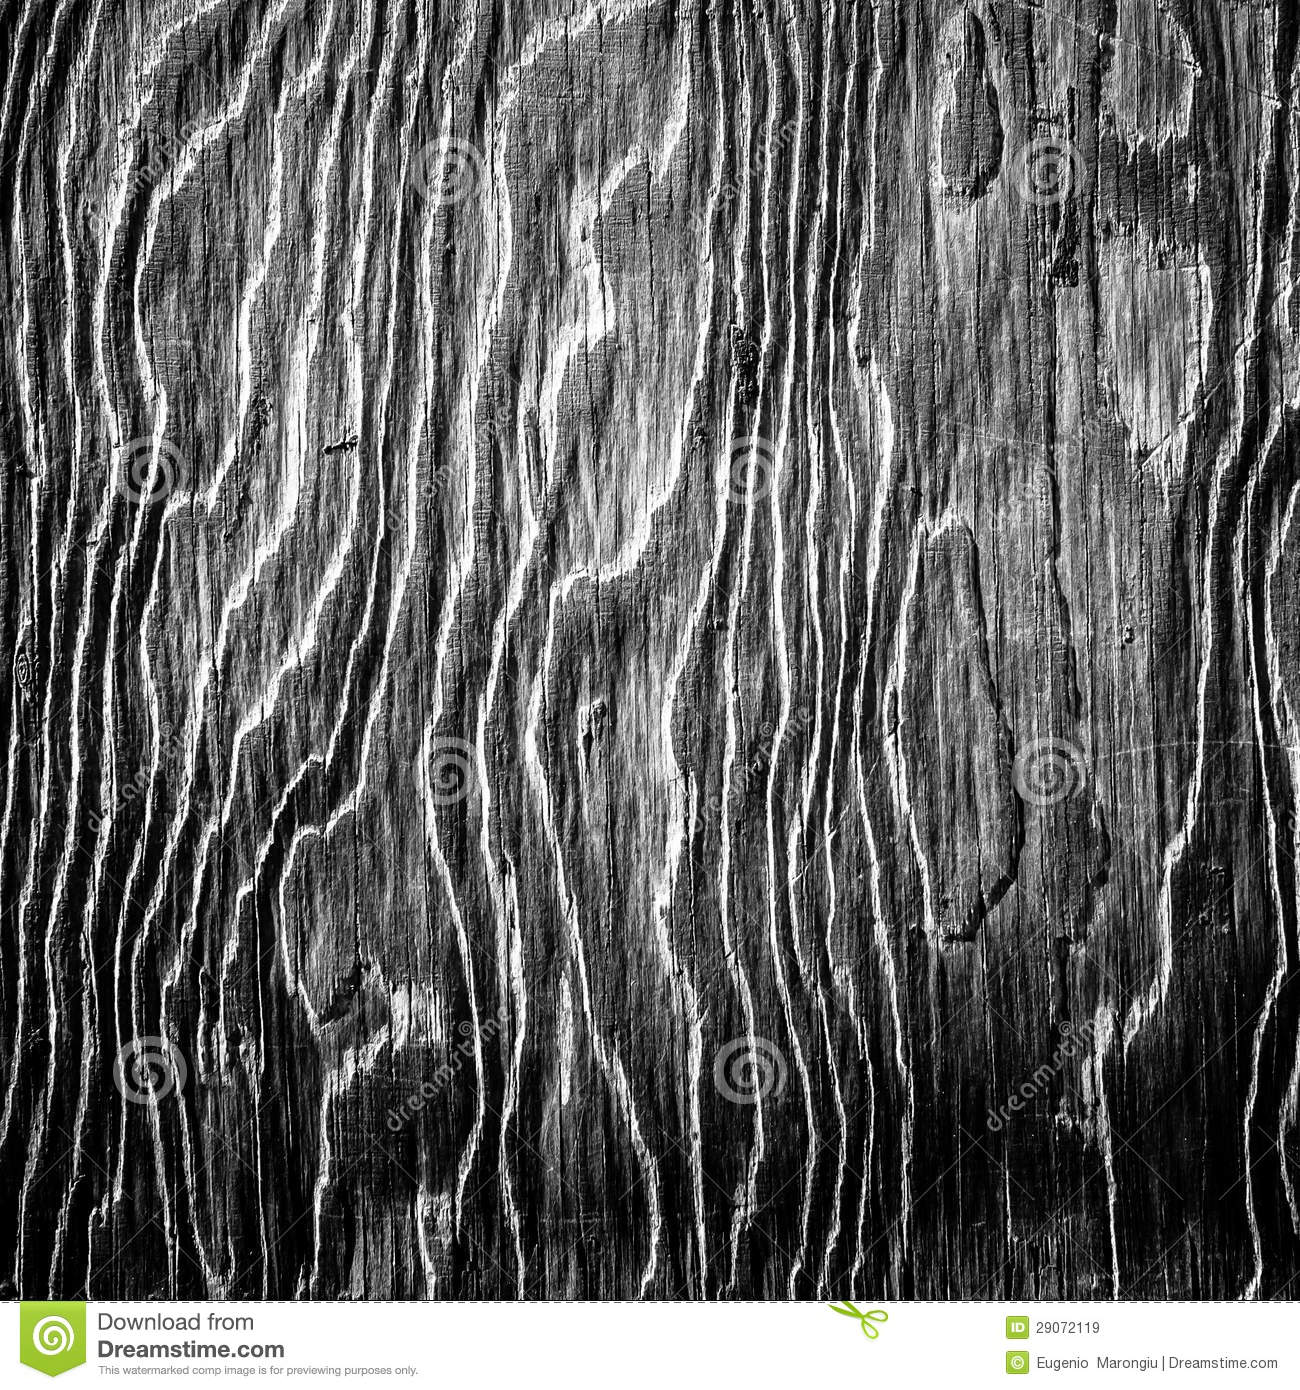 black and white artistic wood texture royalty free stock. Black Bedroom Furniture Sets. Home Design Ideas